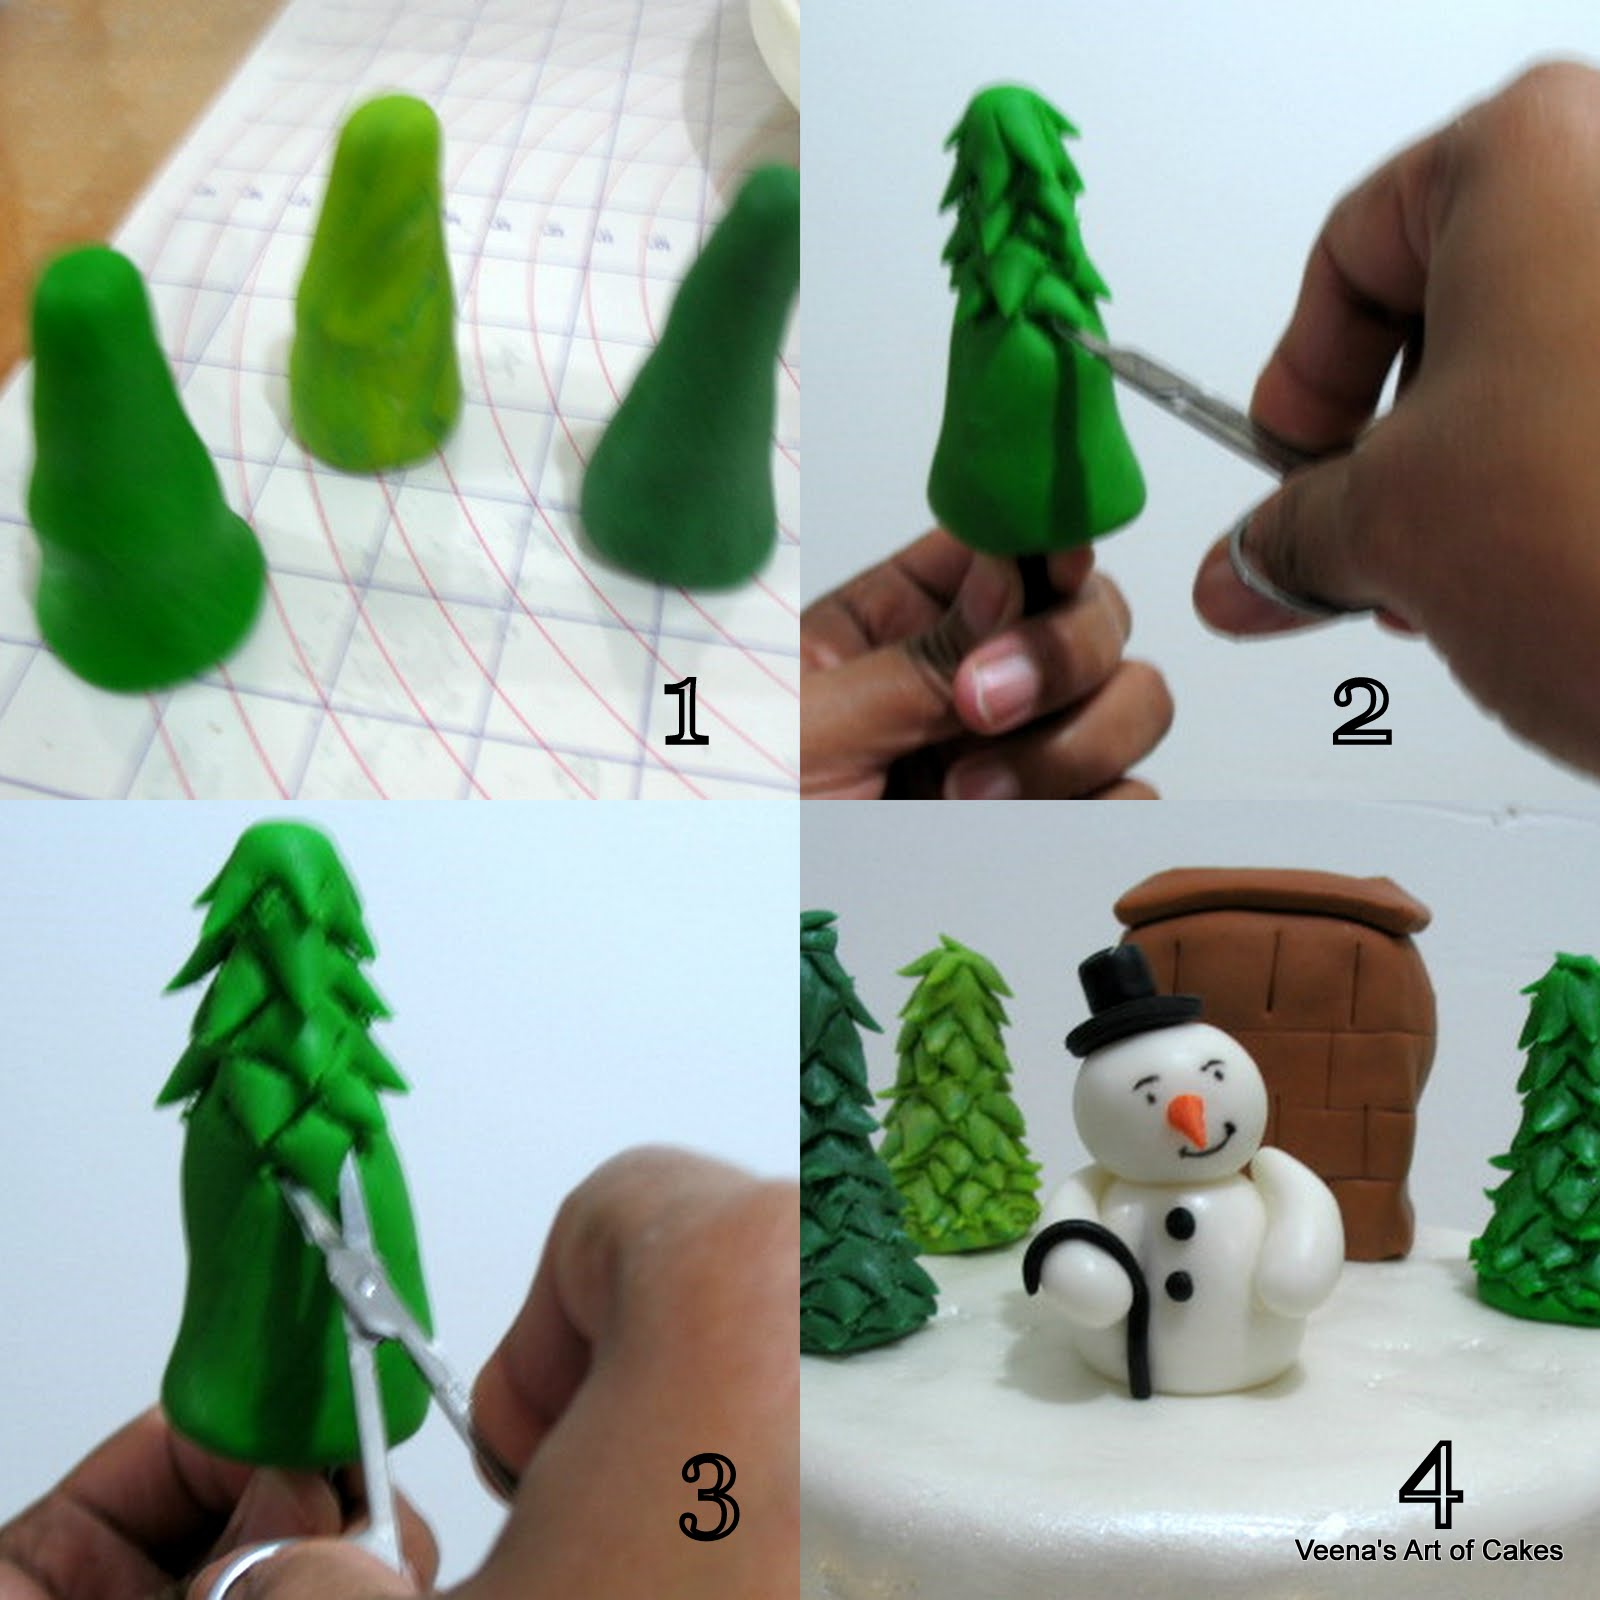 How To Make Icing Figures For Christmas Cakes